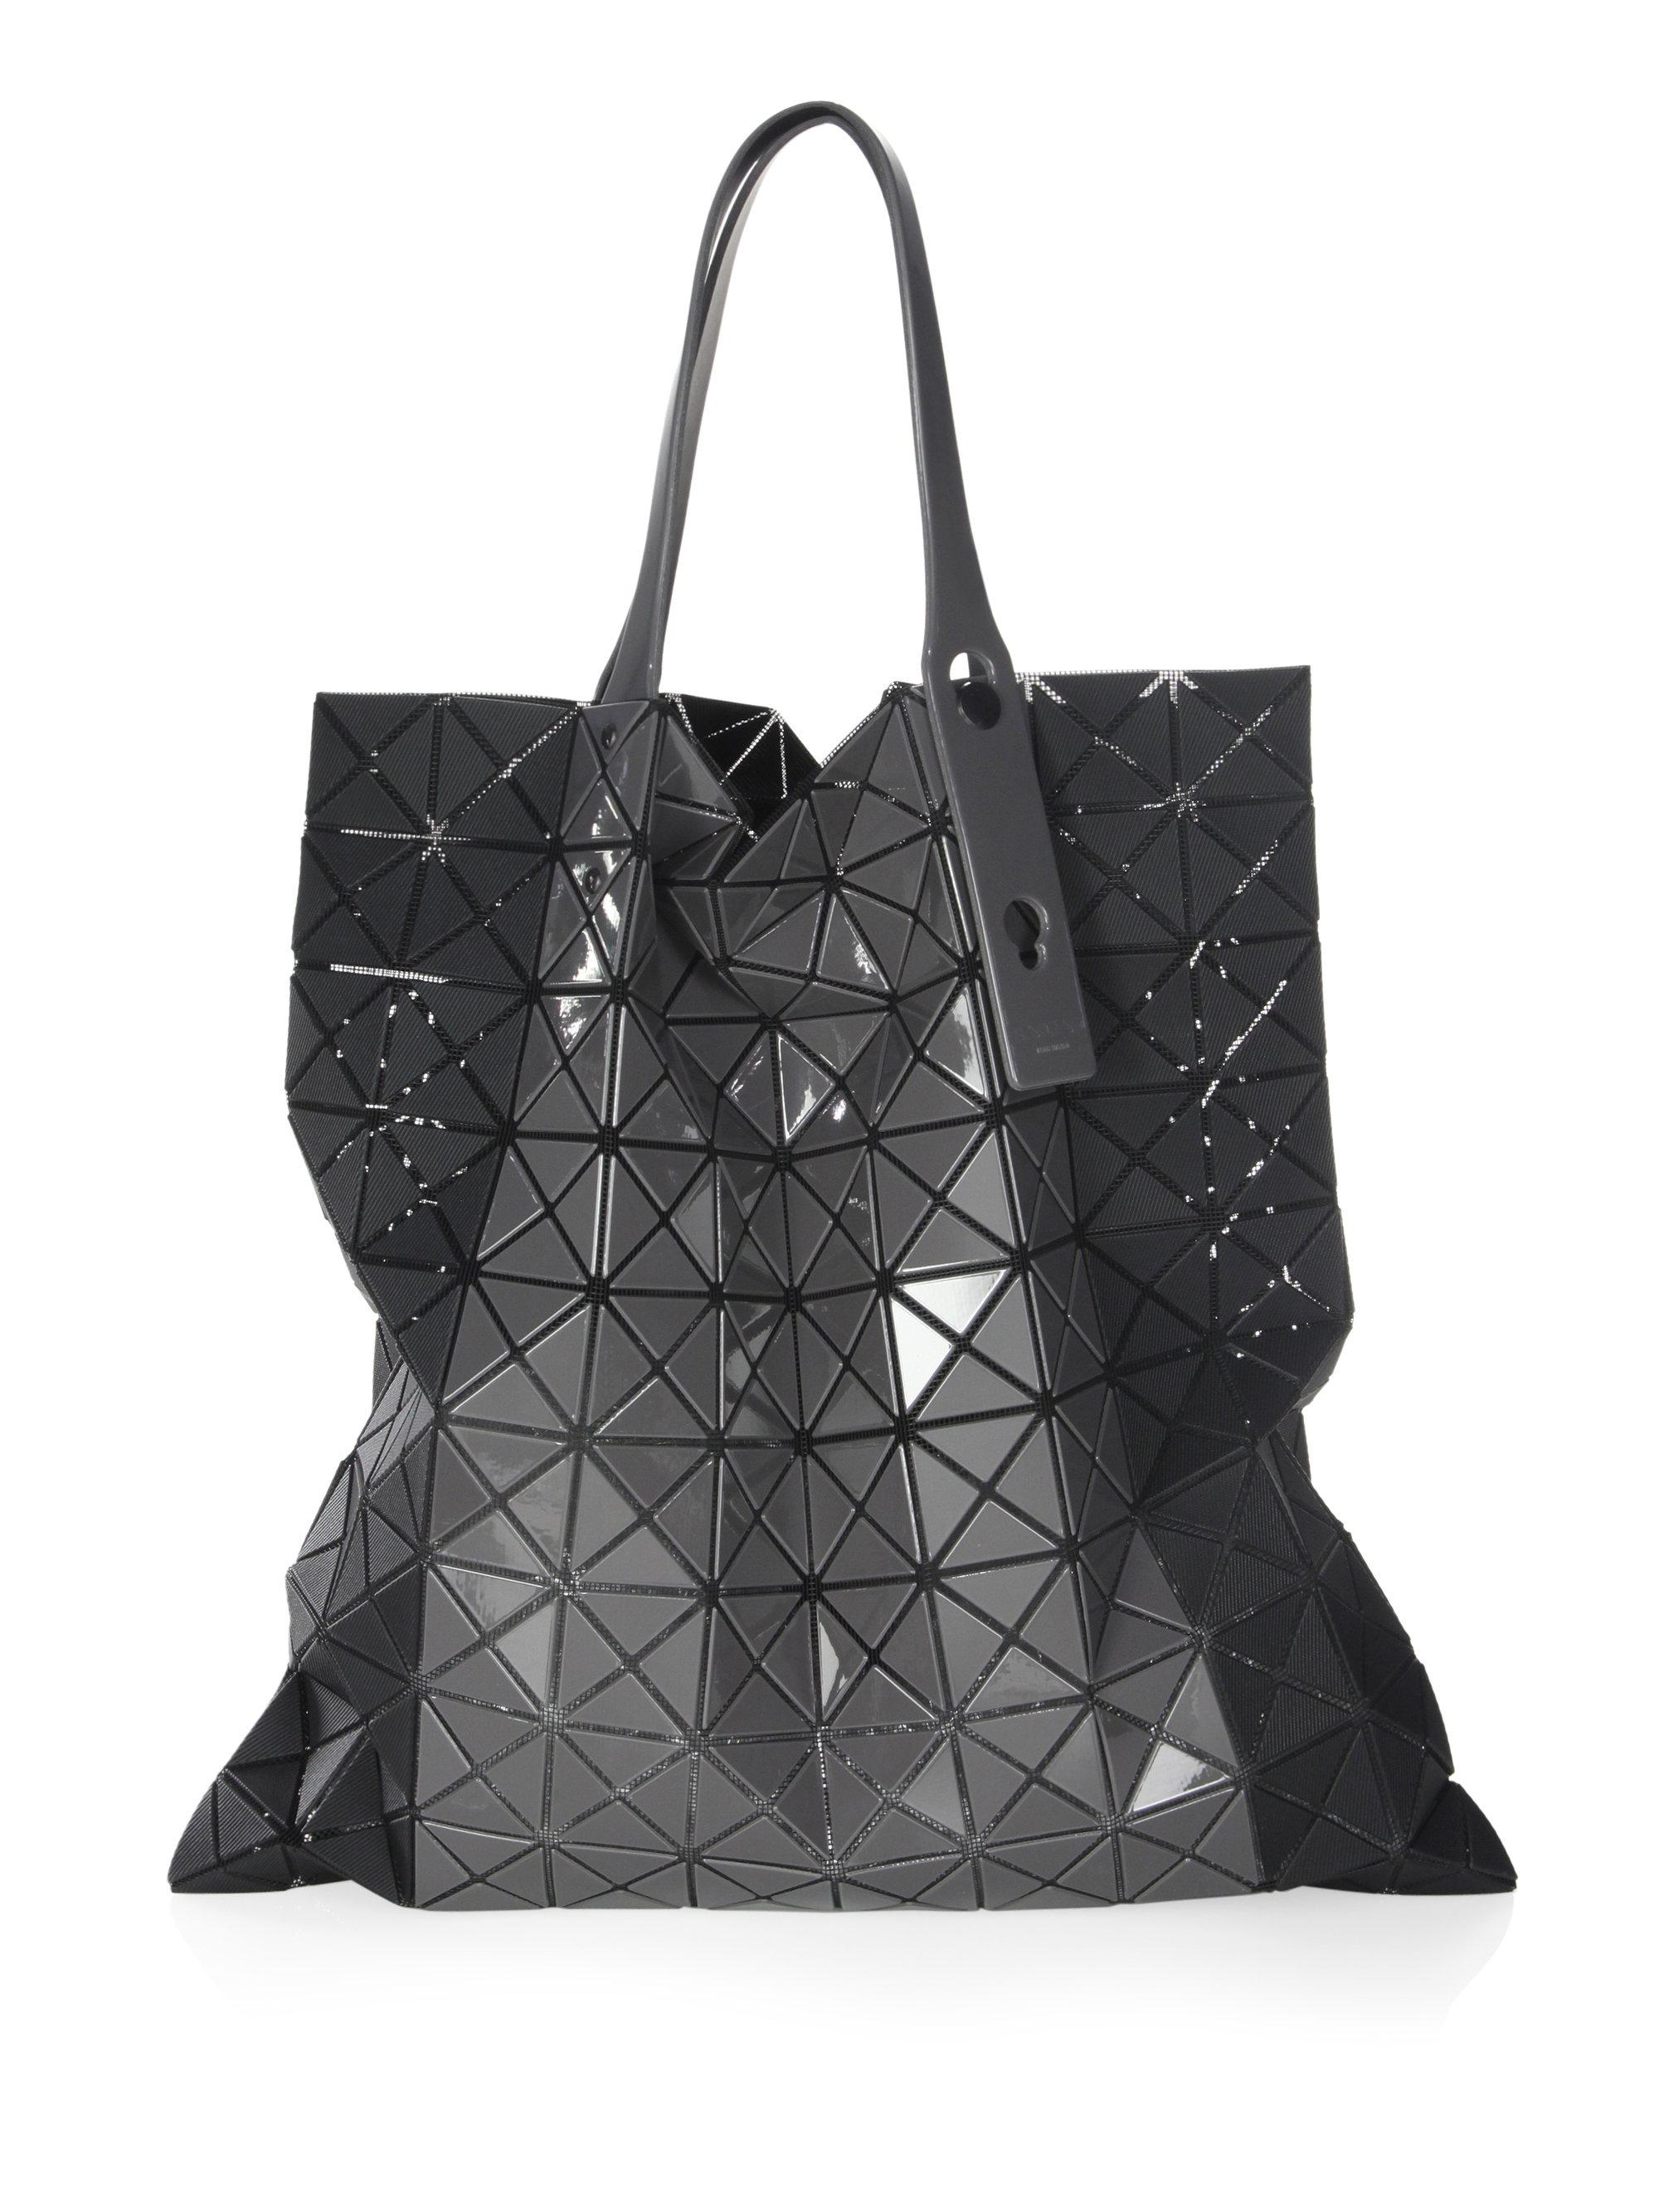 37b36cf6b9 Gallery. Previously sold at  Saks Fifth Avenue · Women s Bao Bao Issey  Miyake Prism ...